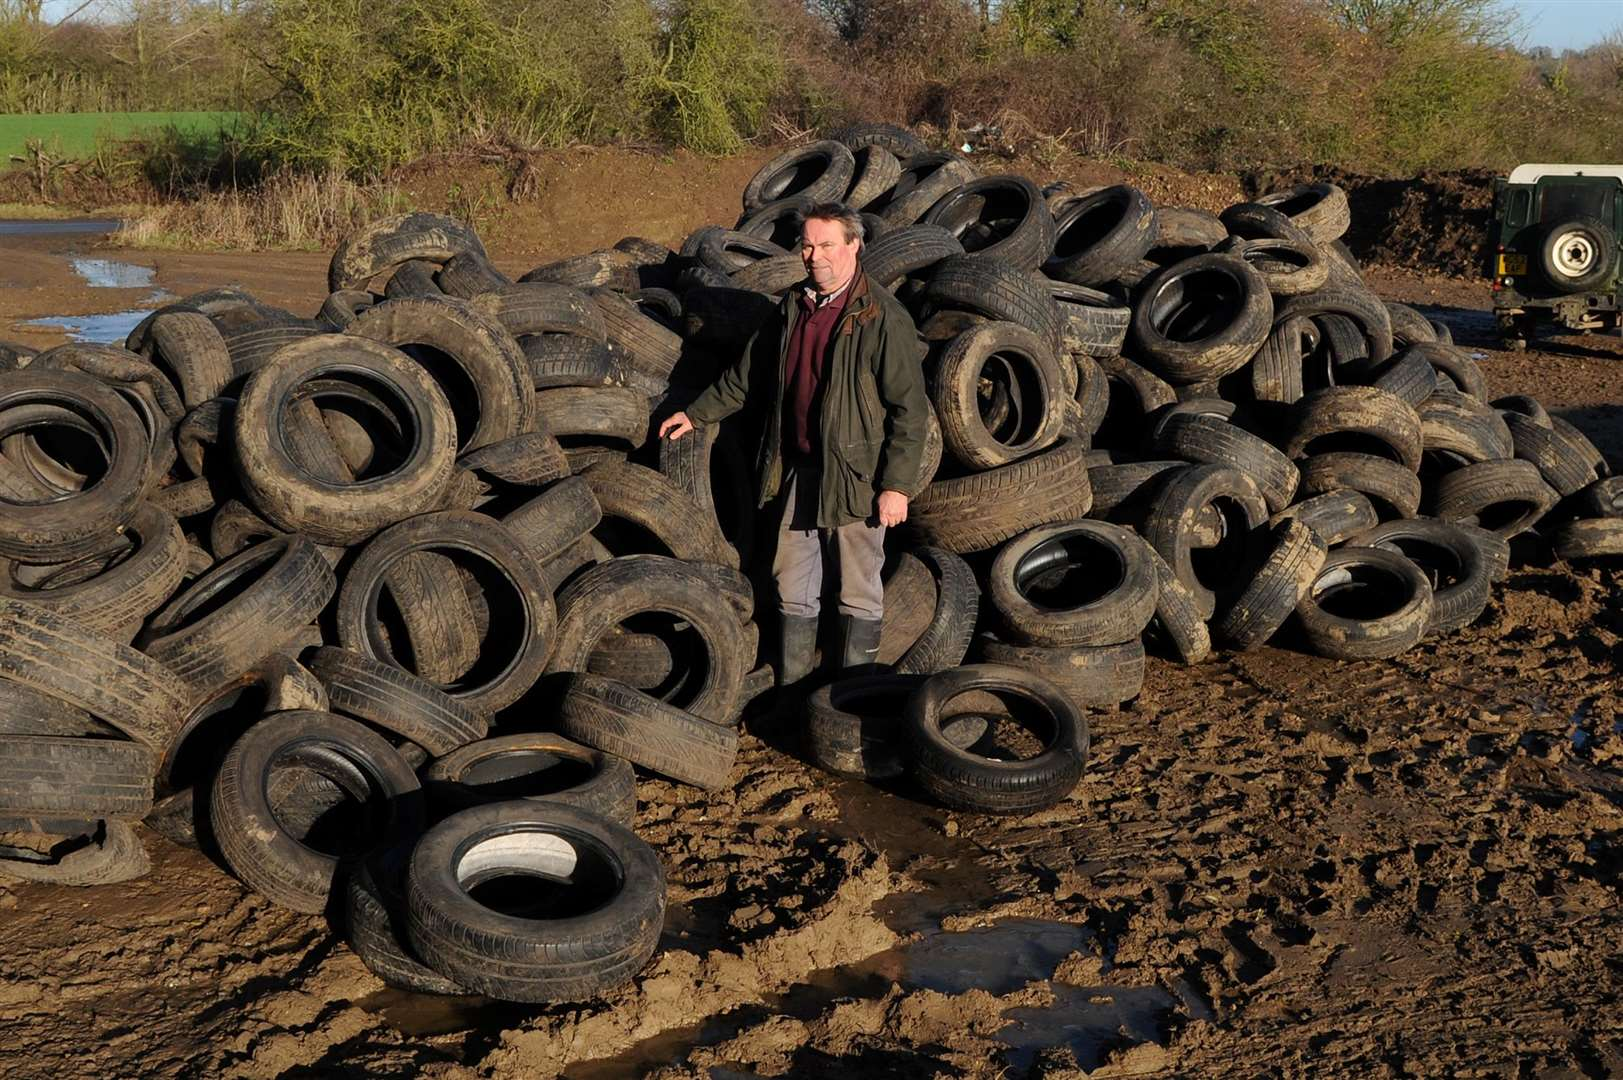 Hundreds of tyres have been fly-tipped on a farm in Milden....Pictured: Farmer Christopher Hawkins standing next to the huge pile of tyres on the farm.....PICTURE: Mecha Morton... (6791067)